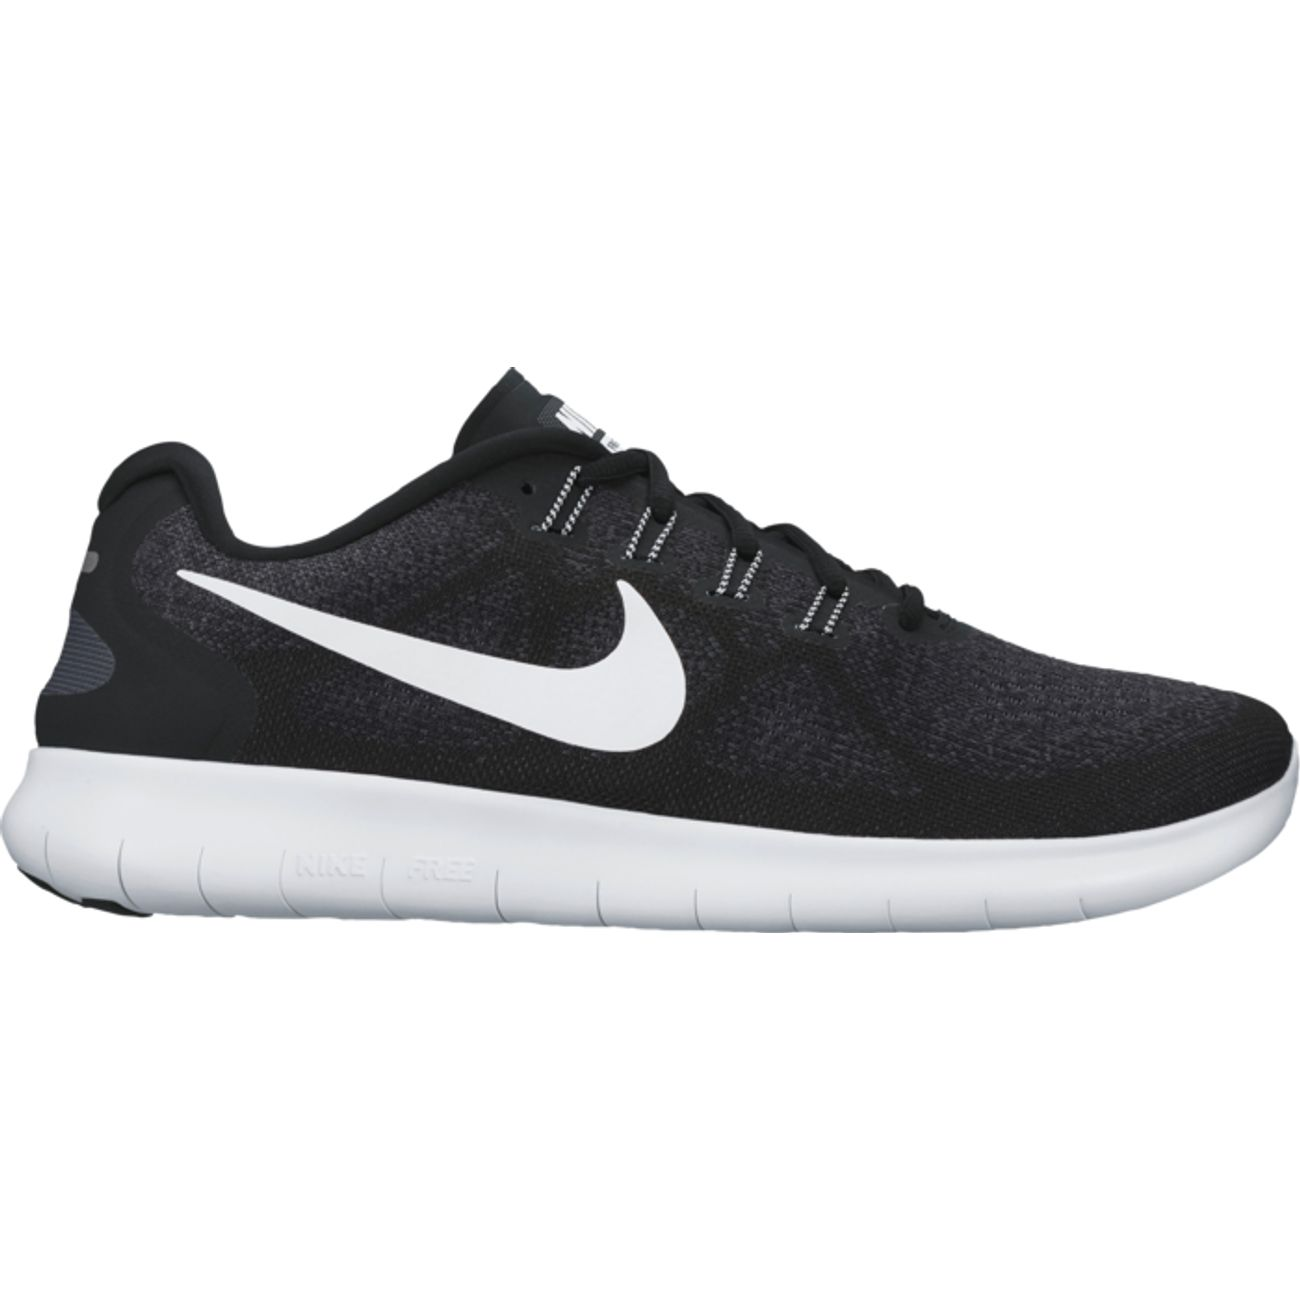 9964d097d4851a CHAUSSURES BASSES running homme NIKE FREE RN M ...